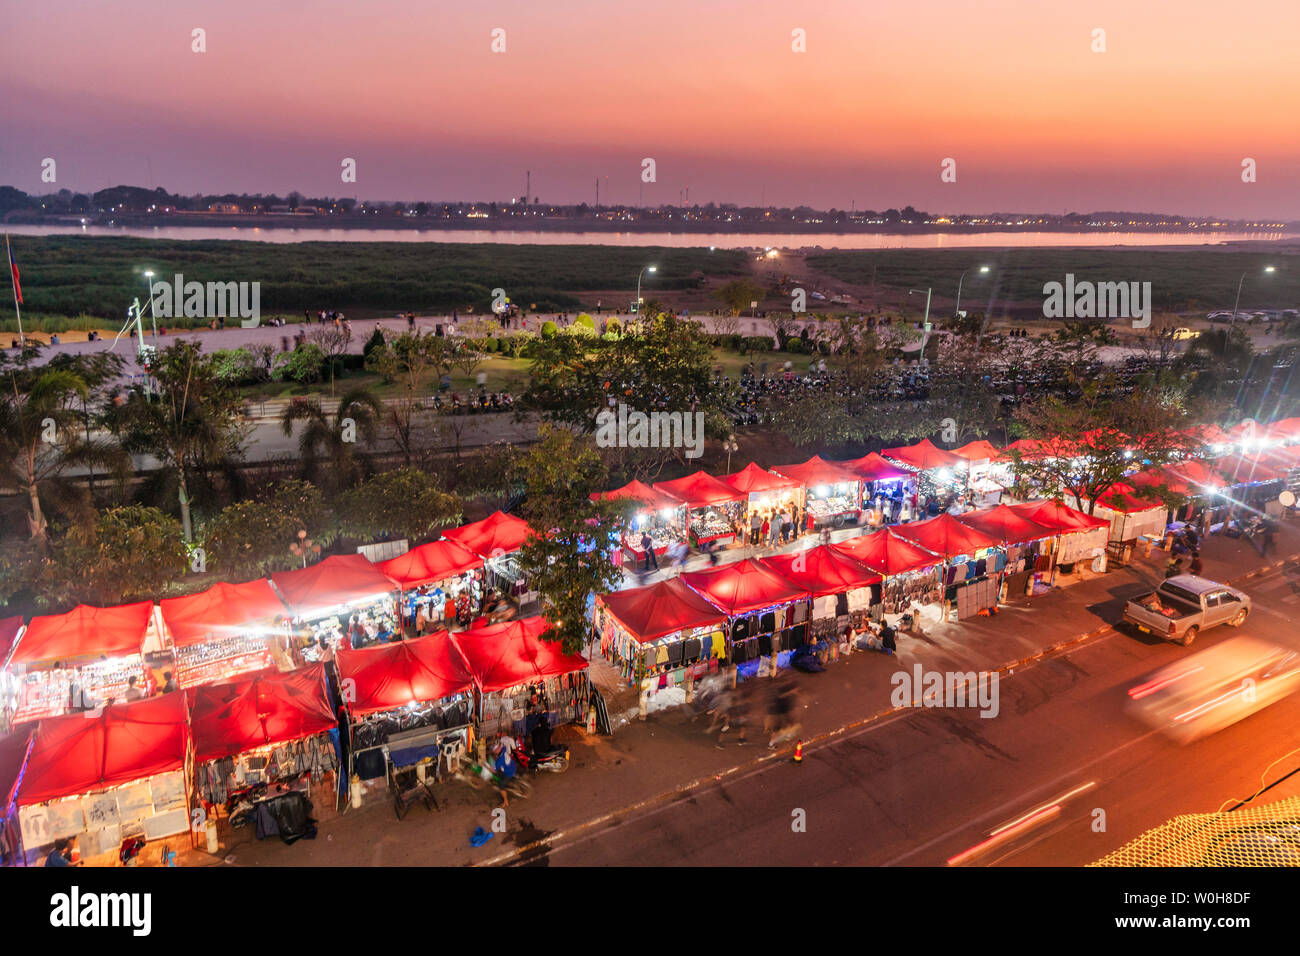 Night market riverside Mekong in Vientiane | Nachtmarkt in Vientiane am Ufer des Mekong, Laos - Stock Image